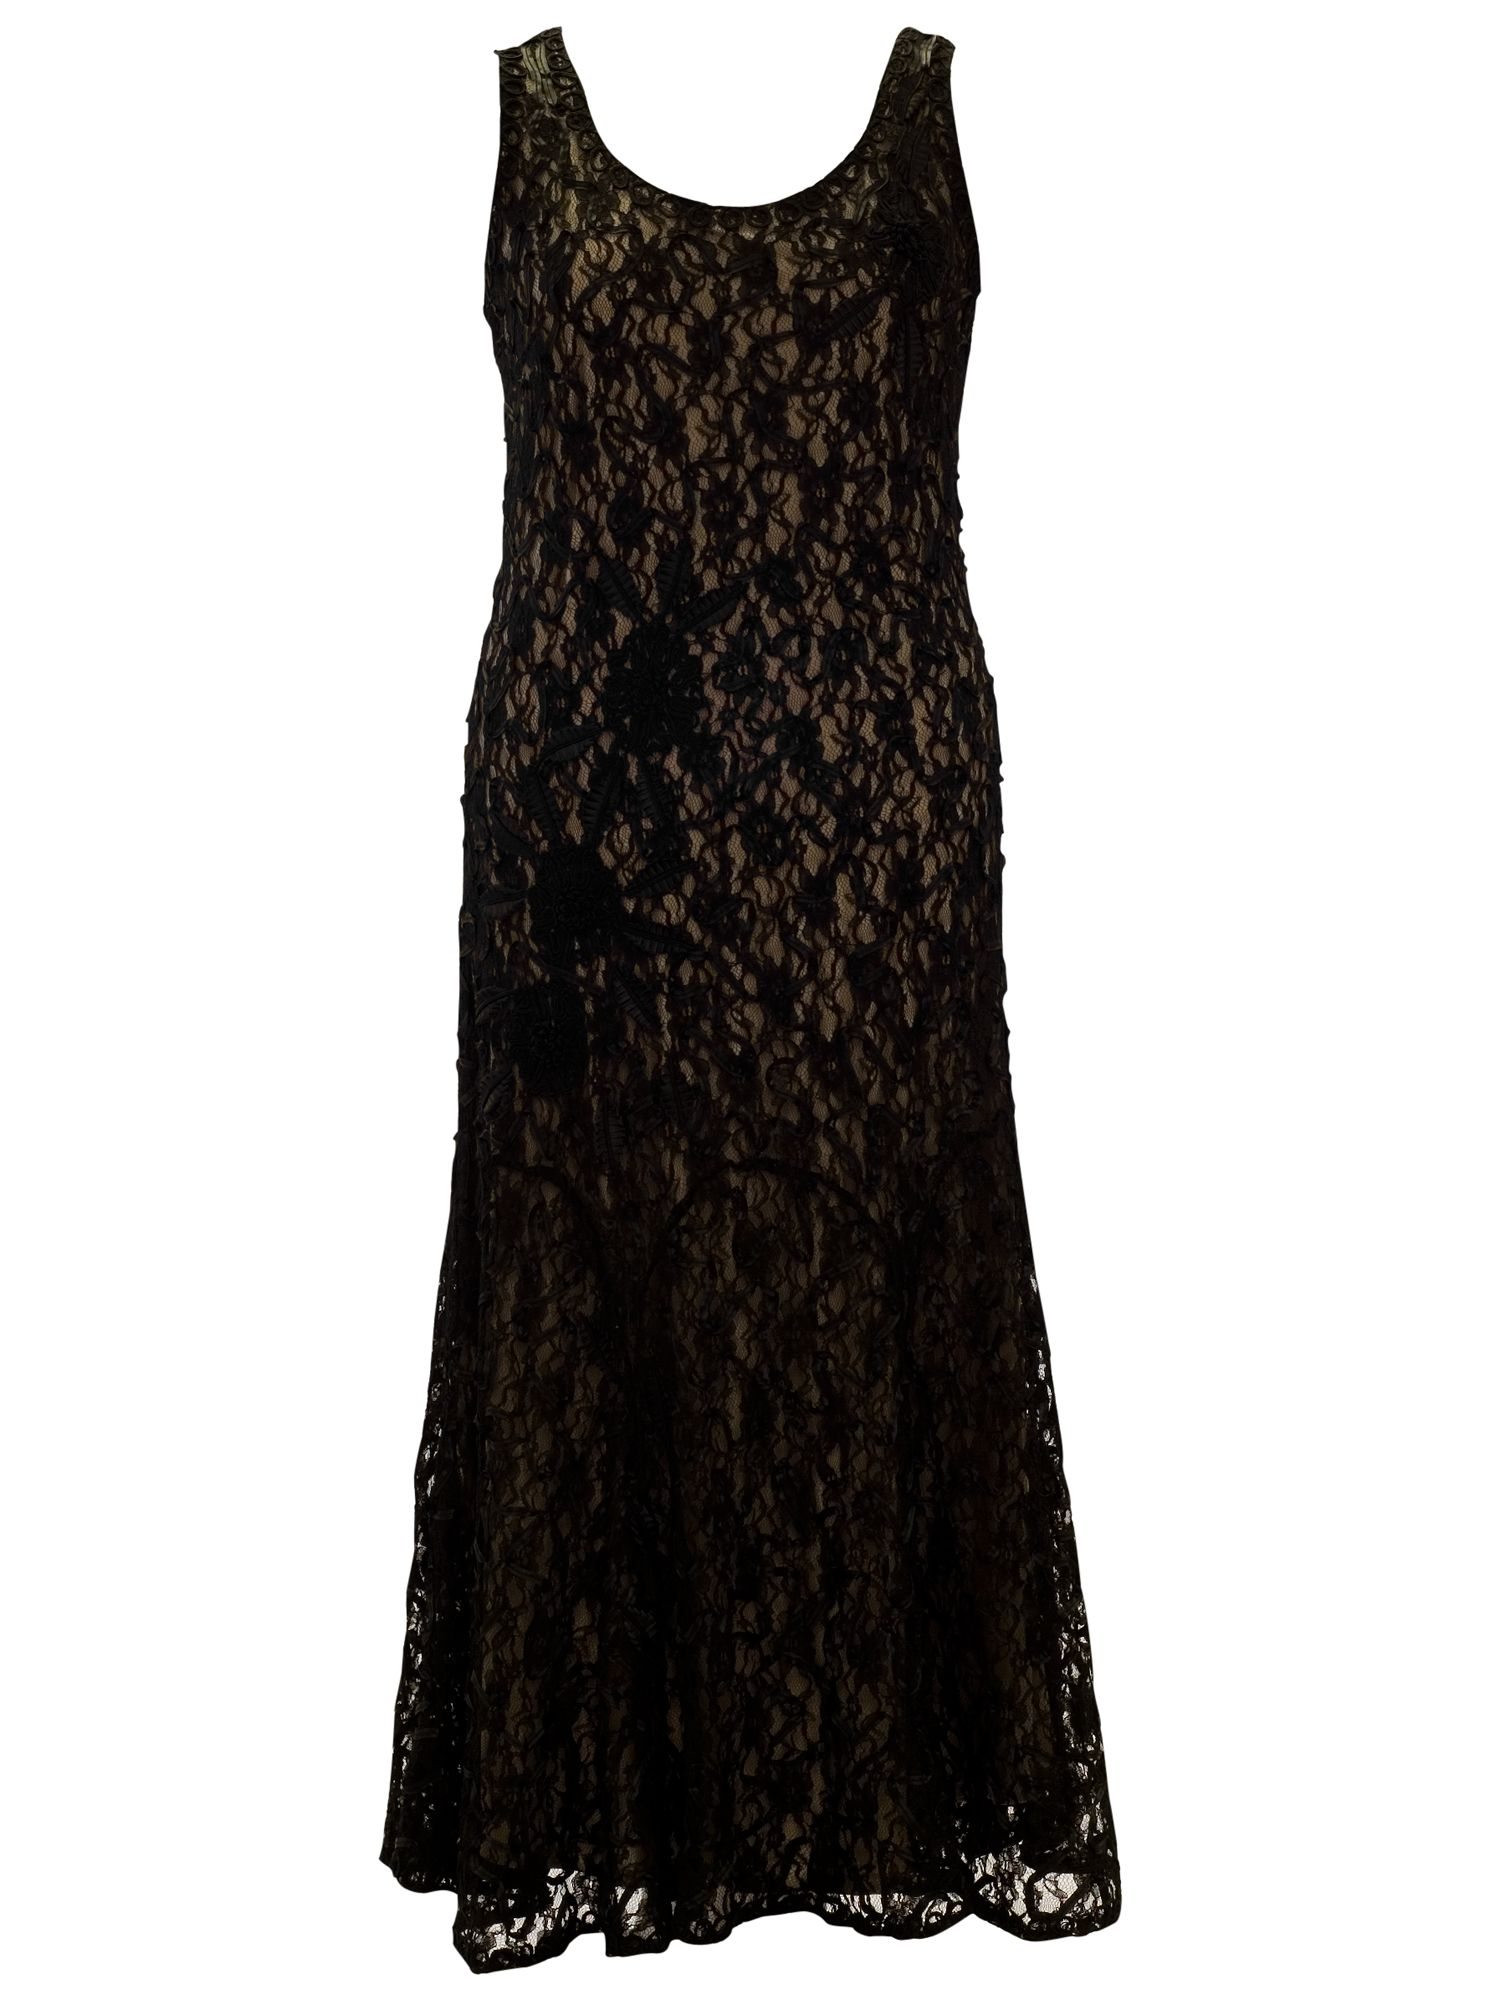 chesca cornelli dress with contrast lining black/champagne, chesca, cornelli, dress, contrast, lining, black/champagne, 24|16|20|18|22|14|12, women, plus size, womens dresses, party outfits, evening gowns, 331777